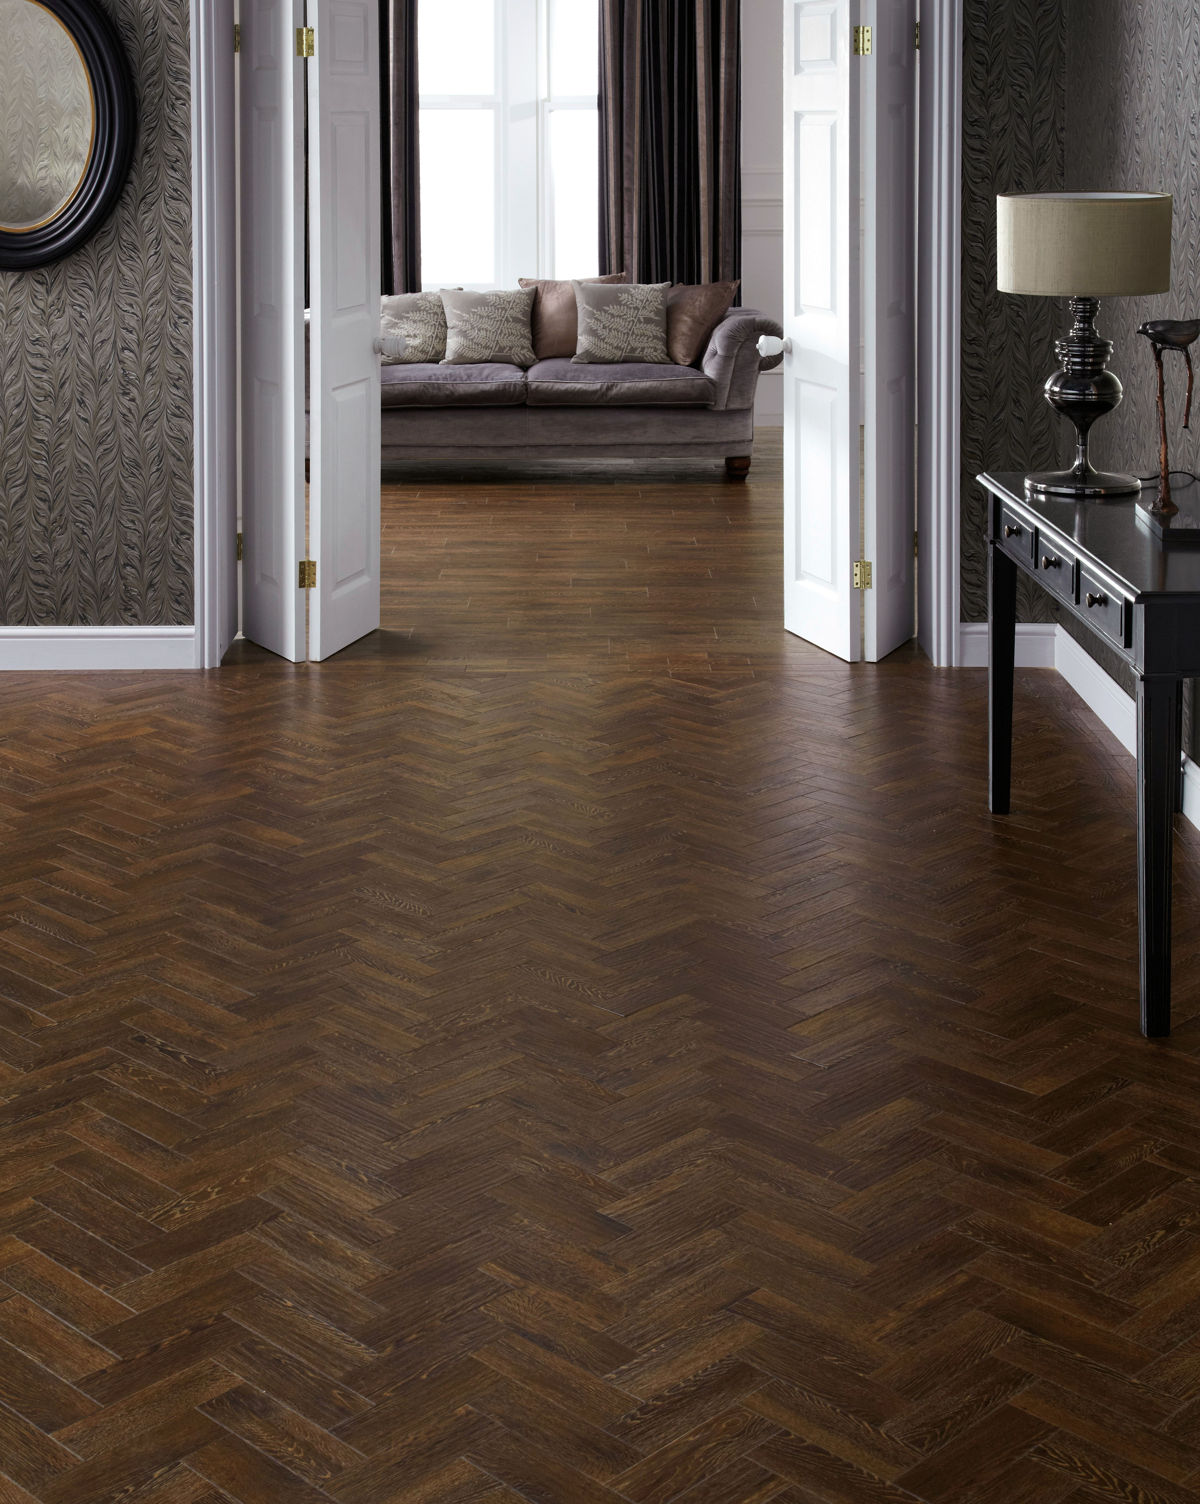 karndean art select sundown oak parquet ap04 vinyl flooring. Black Bedroom Furniture Sets. Home Design Ideas